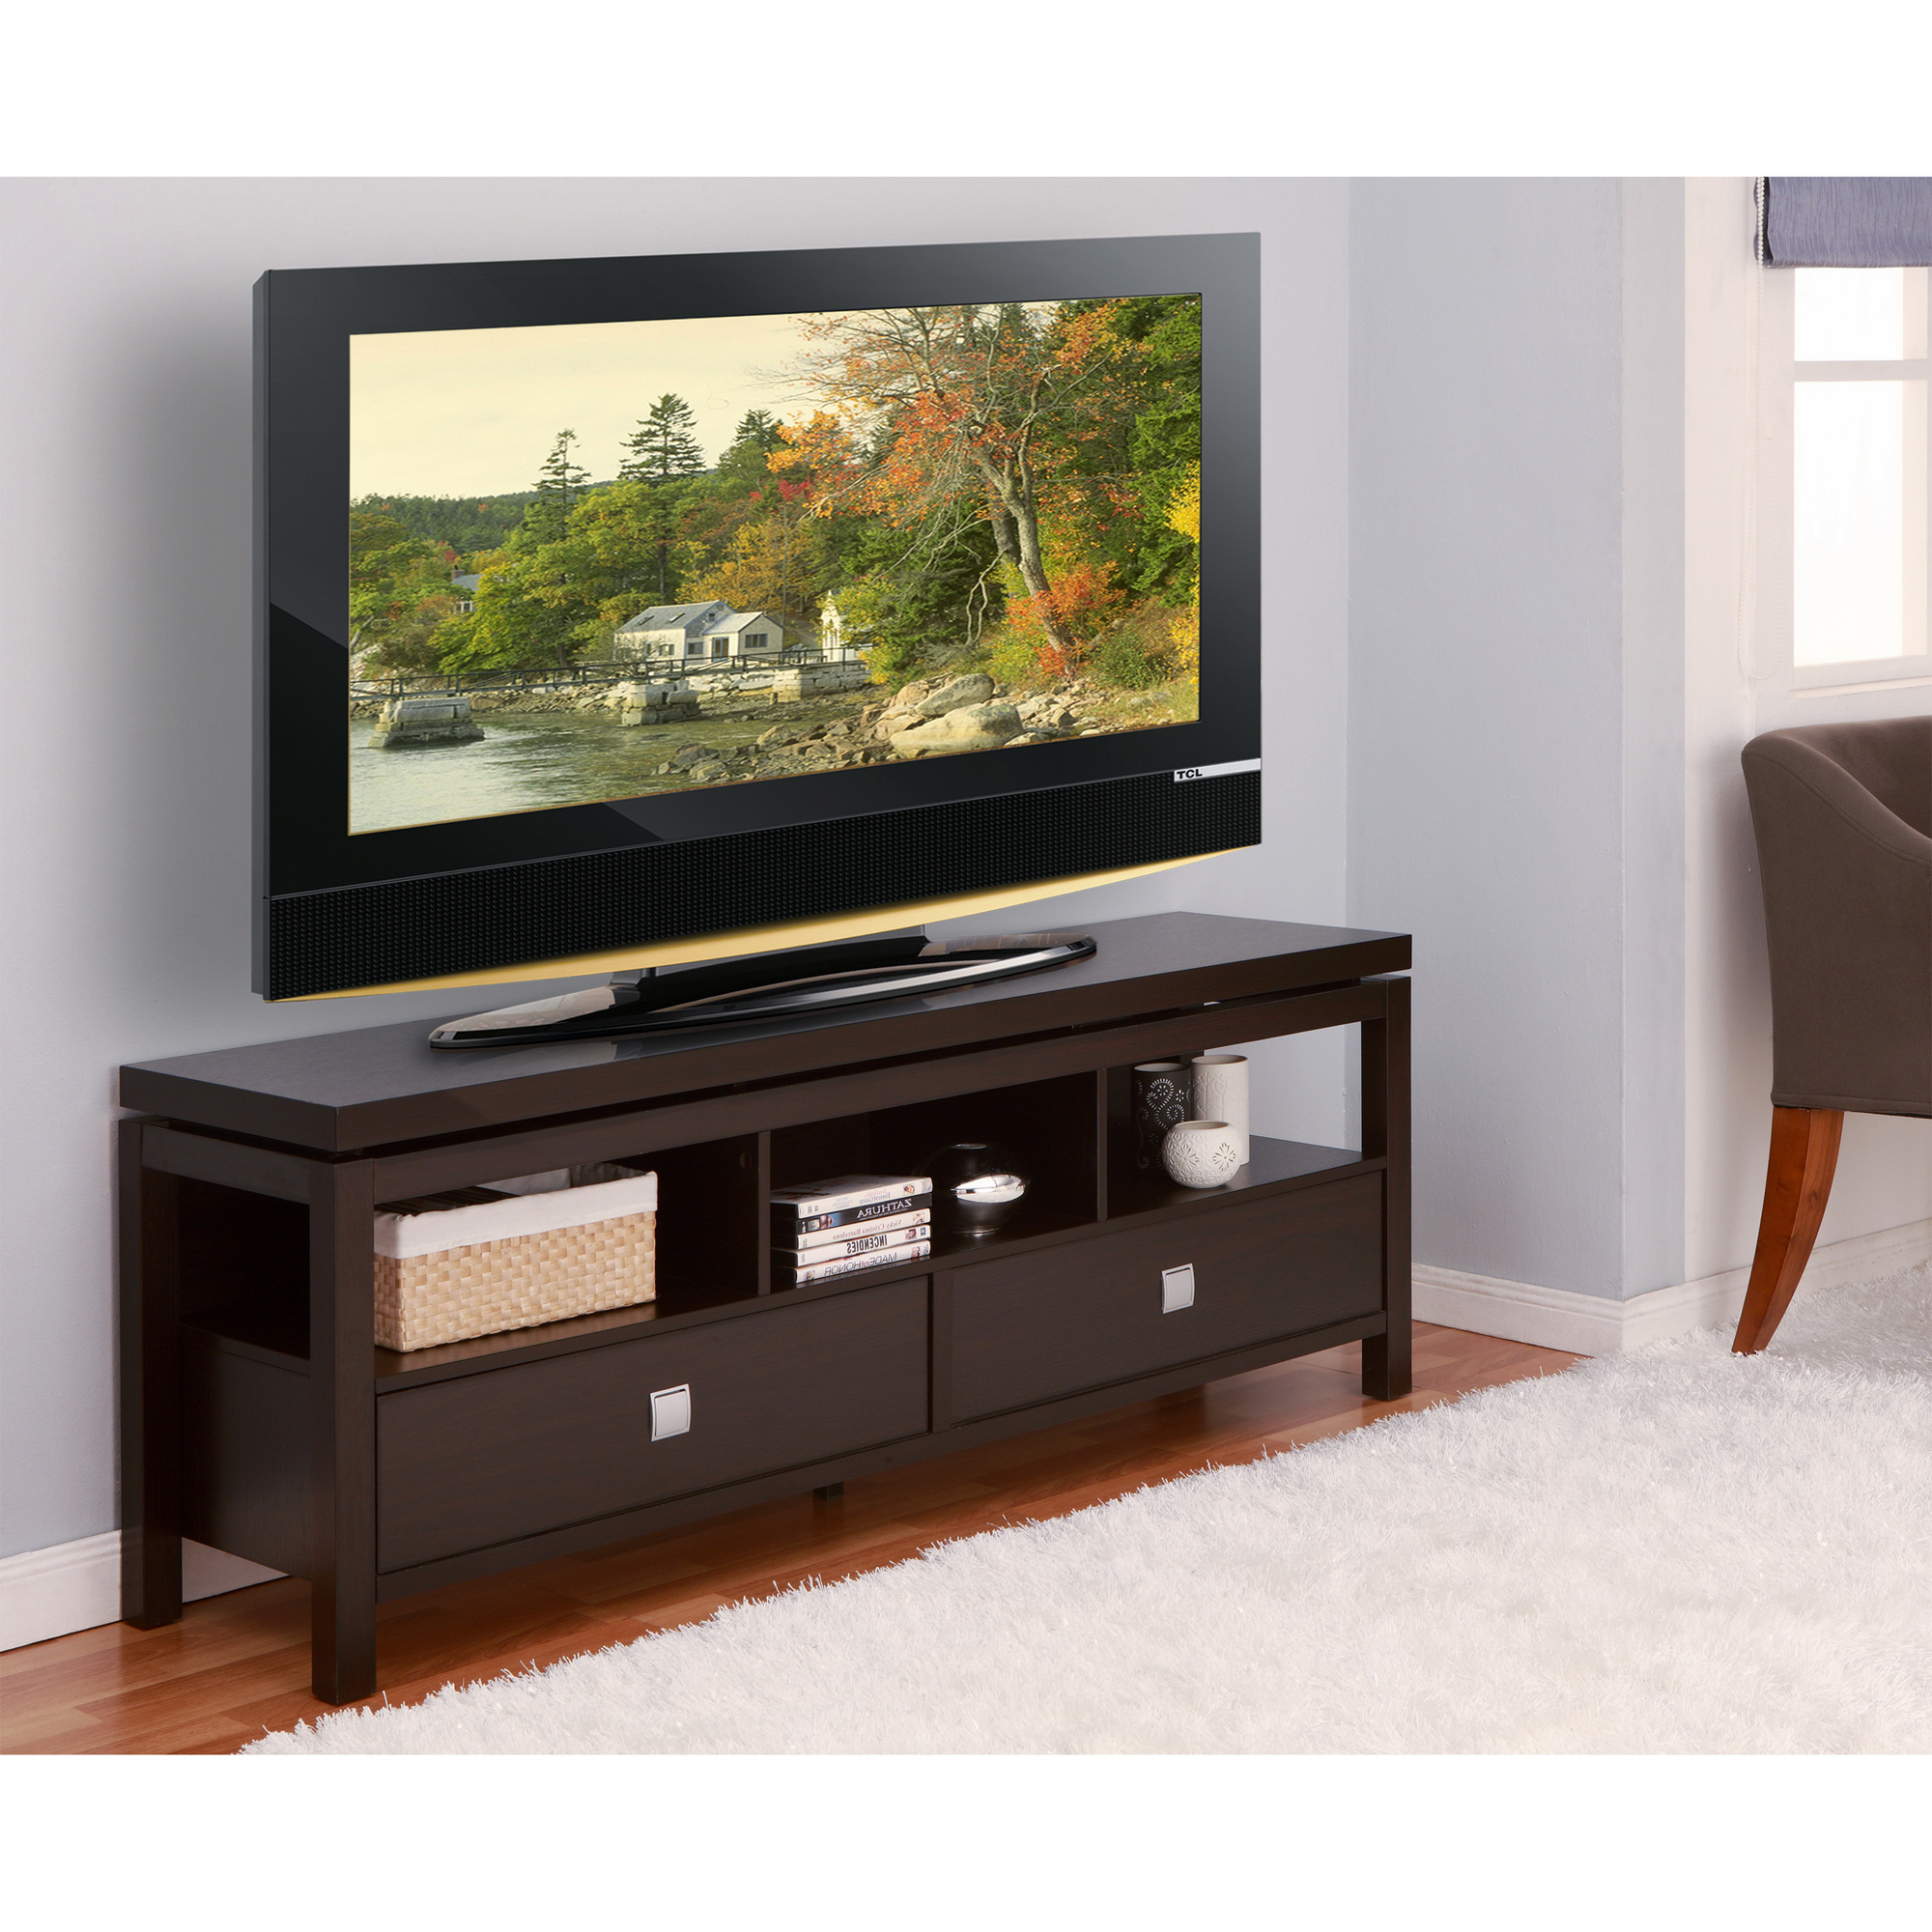 Oxford 60 Inch Tv Stands Within Most Recently Released 44 Inch Tv Stand 65 With Mount Walmart Stands Best Buy 55 Costco 60 (Gallery 2 of 20)